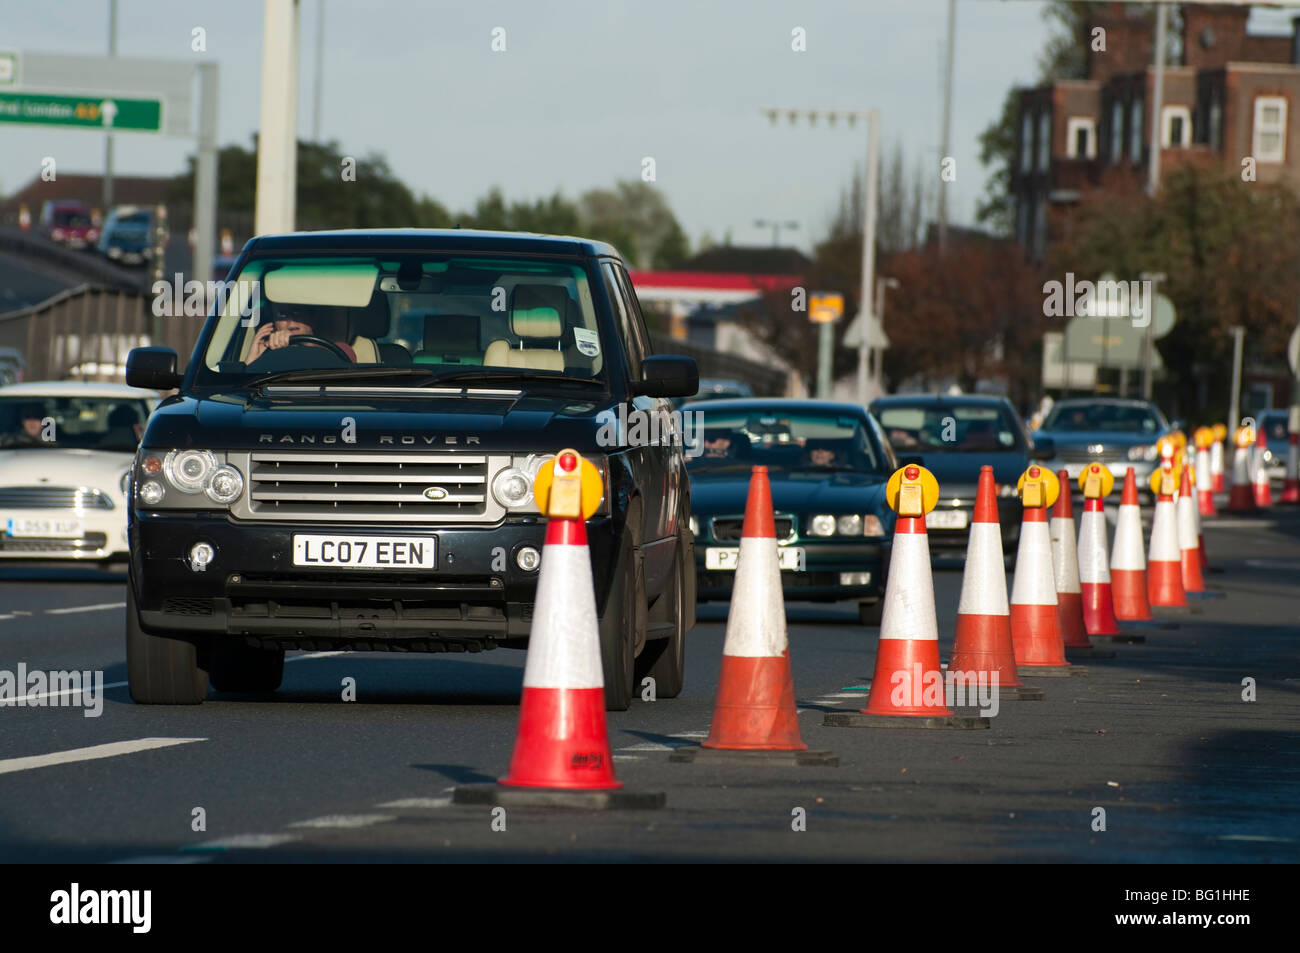 driver in 4 wheel drive speaking on mobile phone passes road works and traffic cones - Stock Image